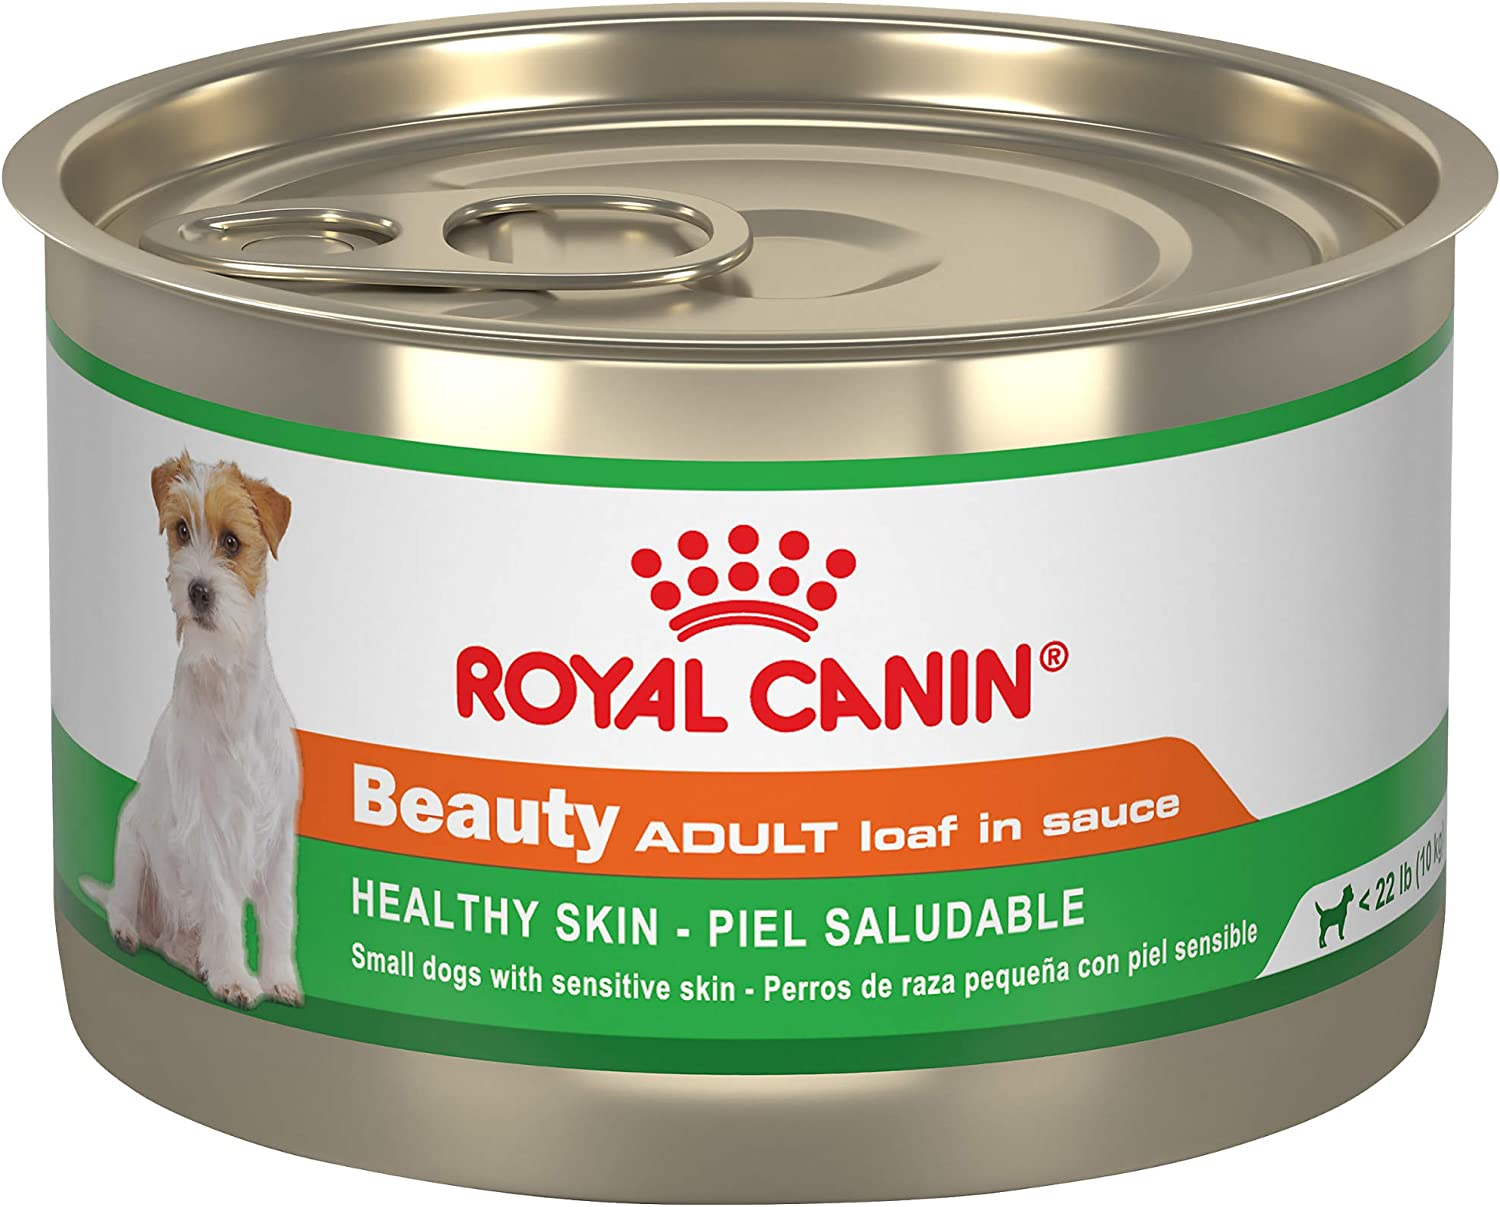 Royal Canin Canine Health Nutrition Adult Beauty Loaf in Sauce Canned Dog Food, 5.2 oz Can (Pack of 24)